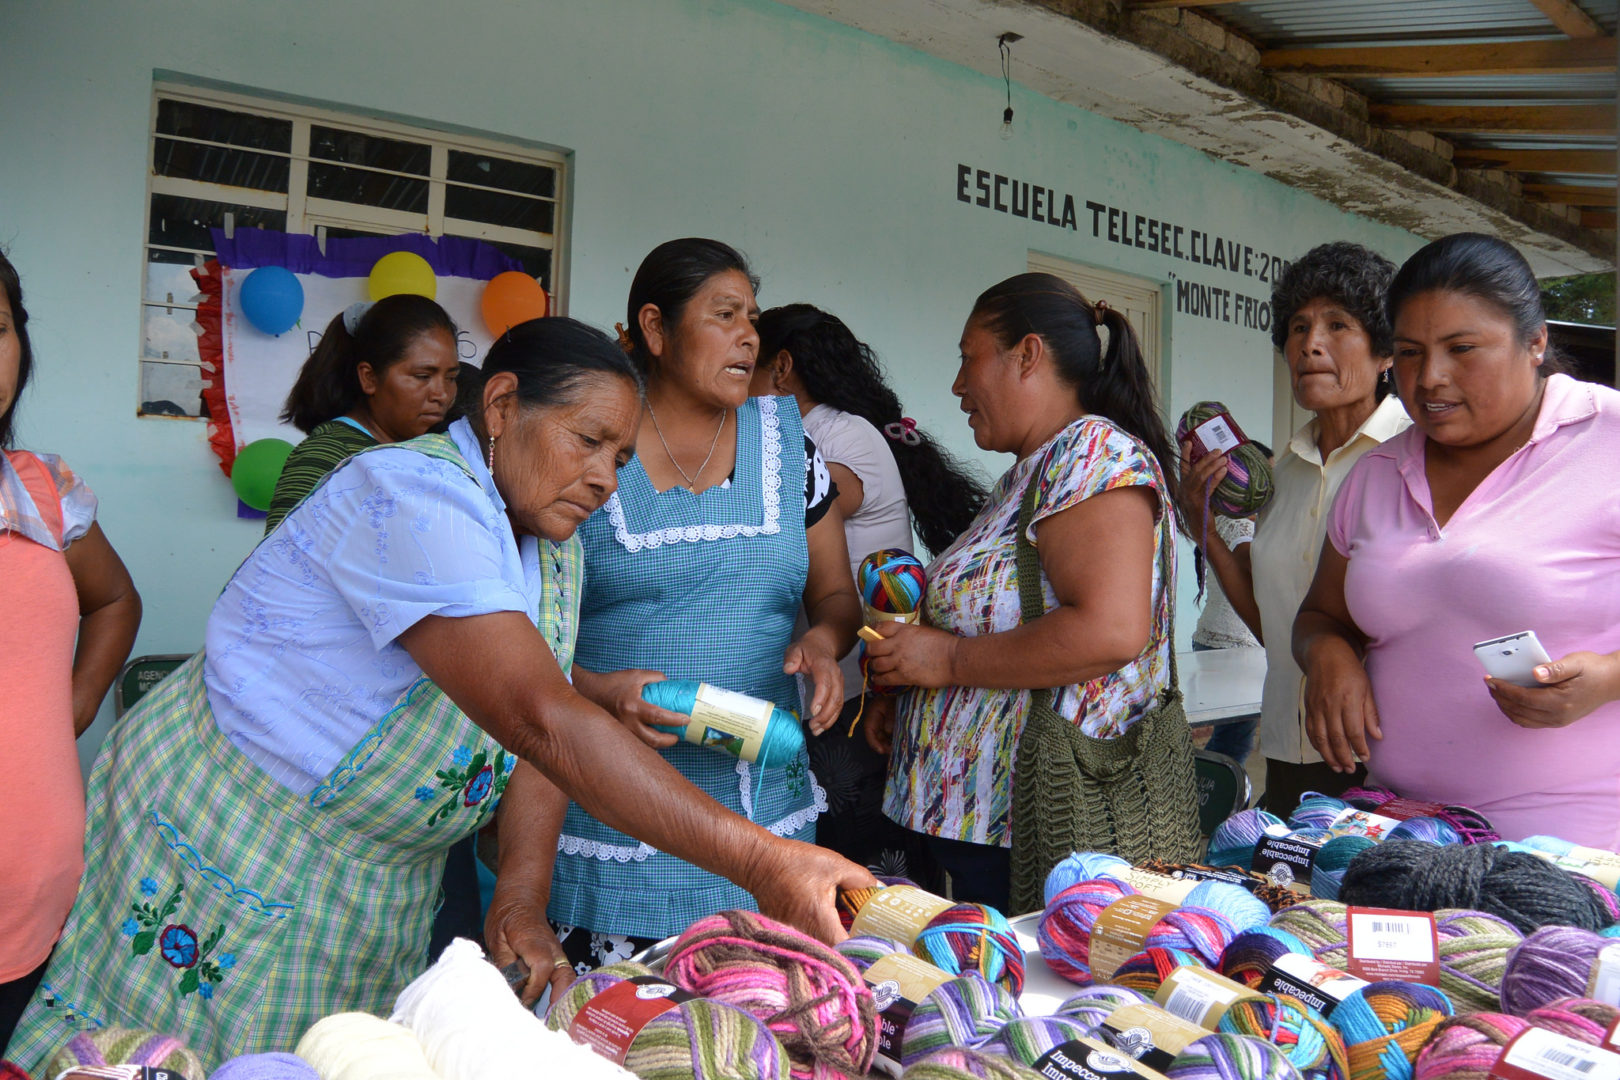 A handicraft market in Mexico